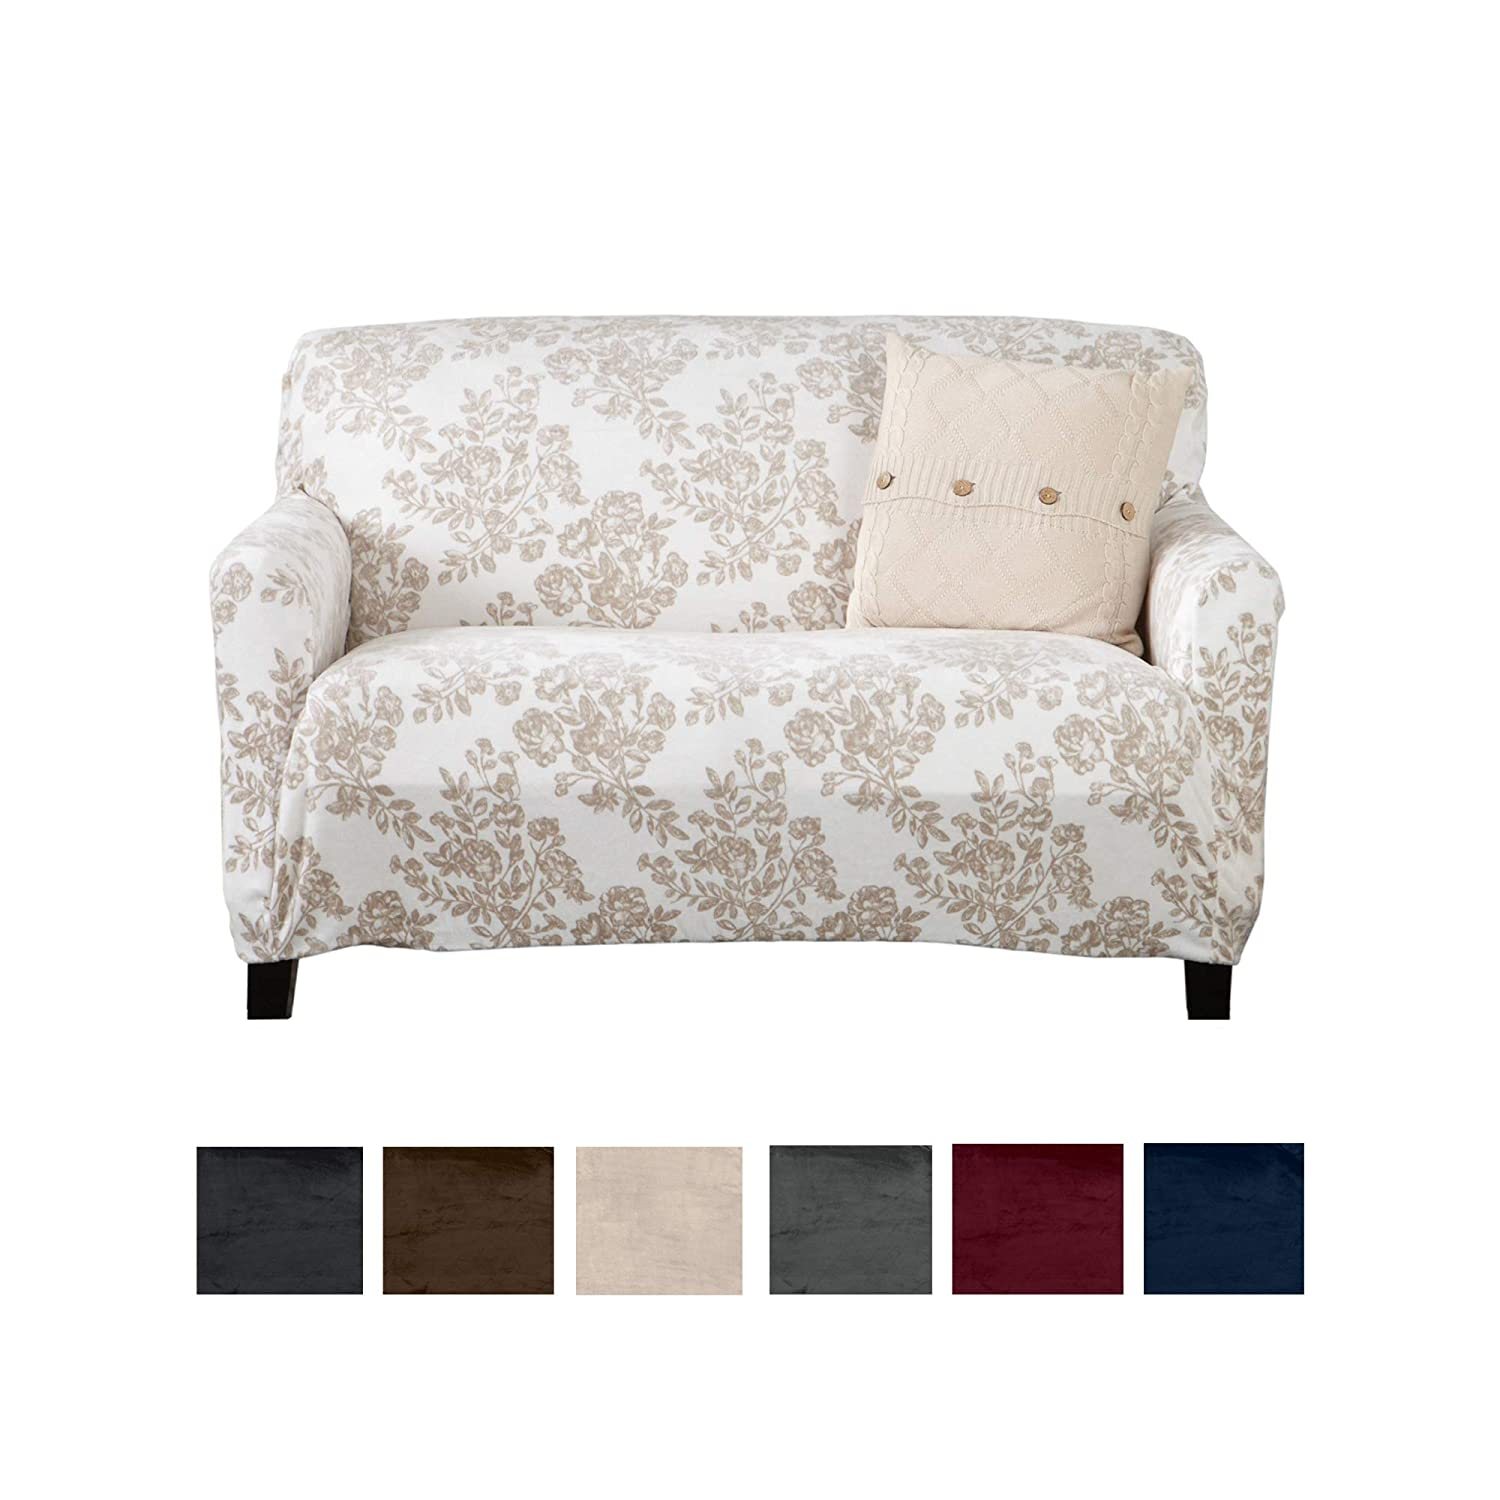 Great Bay Home Modern Velvet Plush Love Seat Slipcover. Strapless Loveseat Cover, Stretch Slipcover for Loveseat, Soft Love Seat Cover for Living Room. (Love Seat, Silver Cloud - Toile)